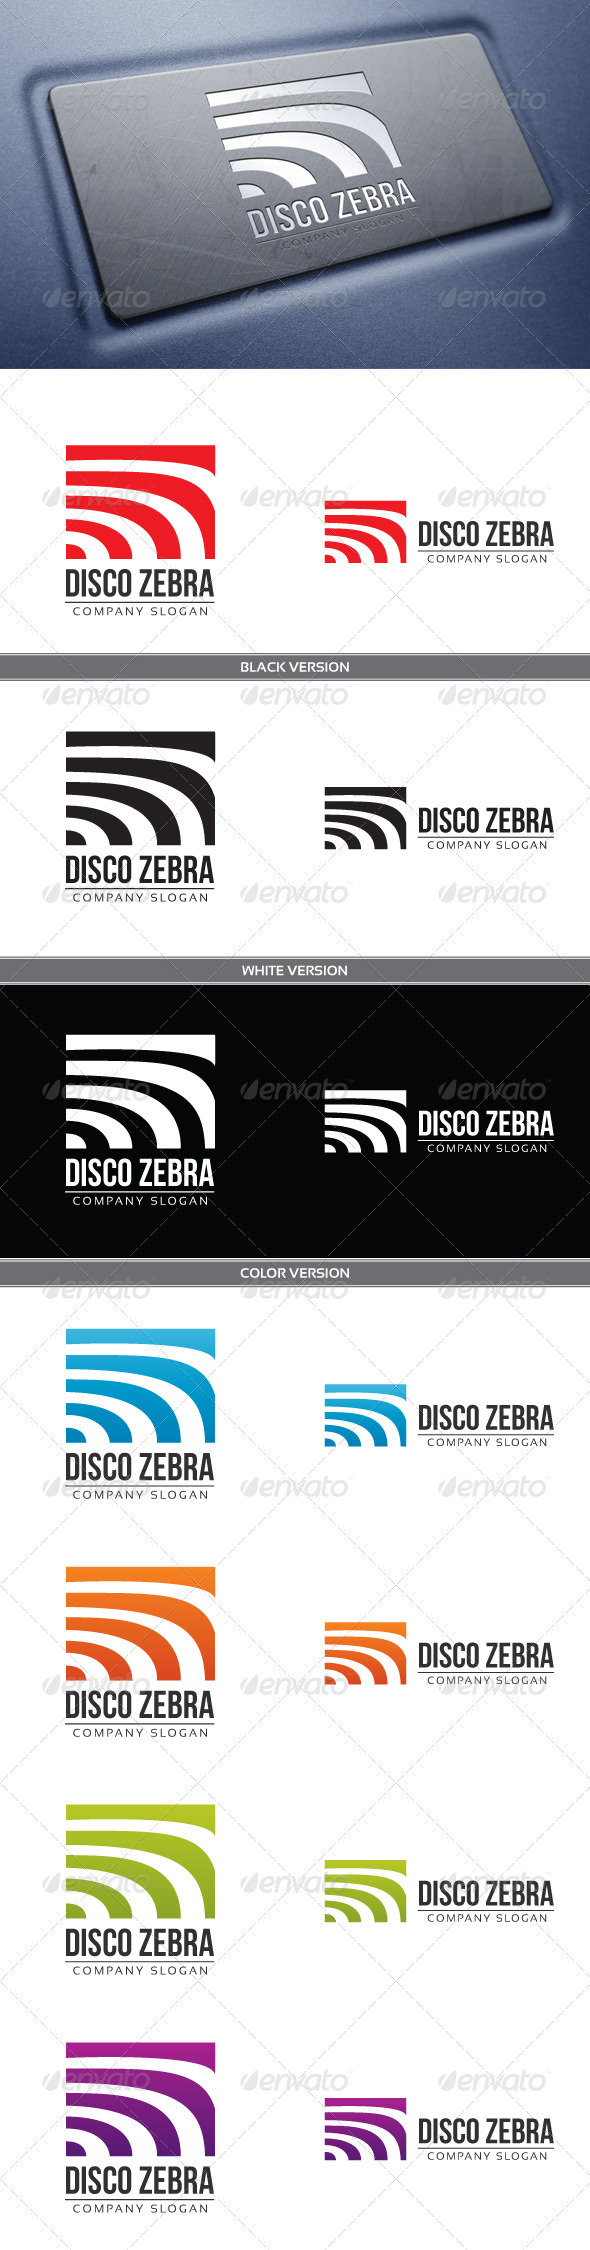 Disco Zebra Logo - Vector Abstract